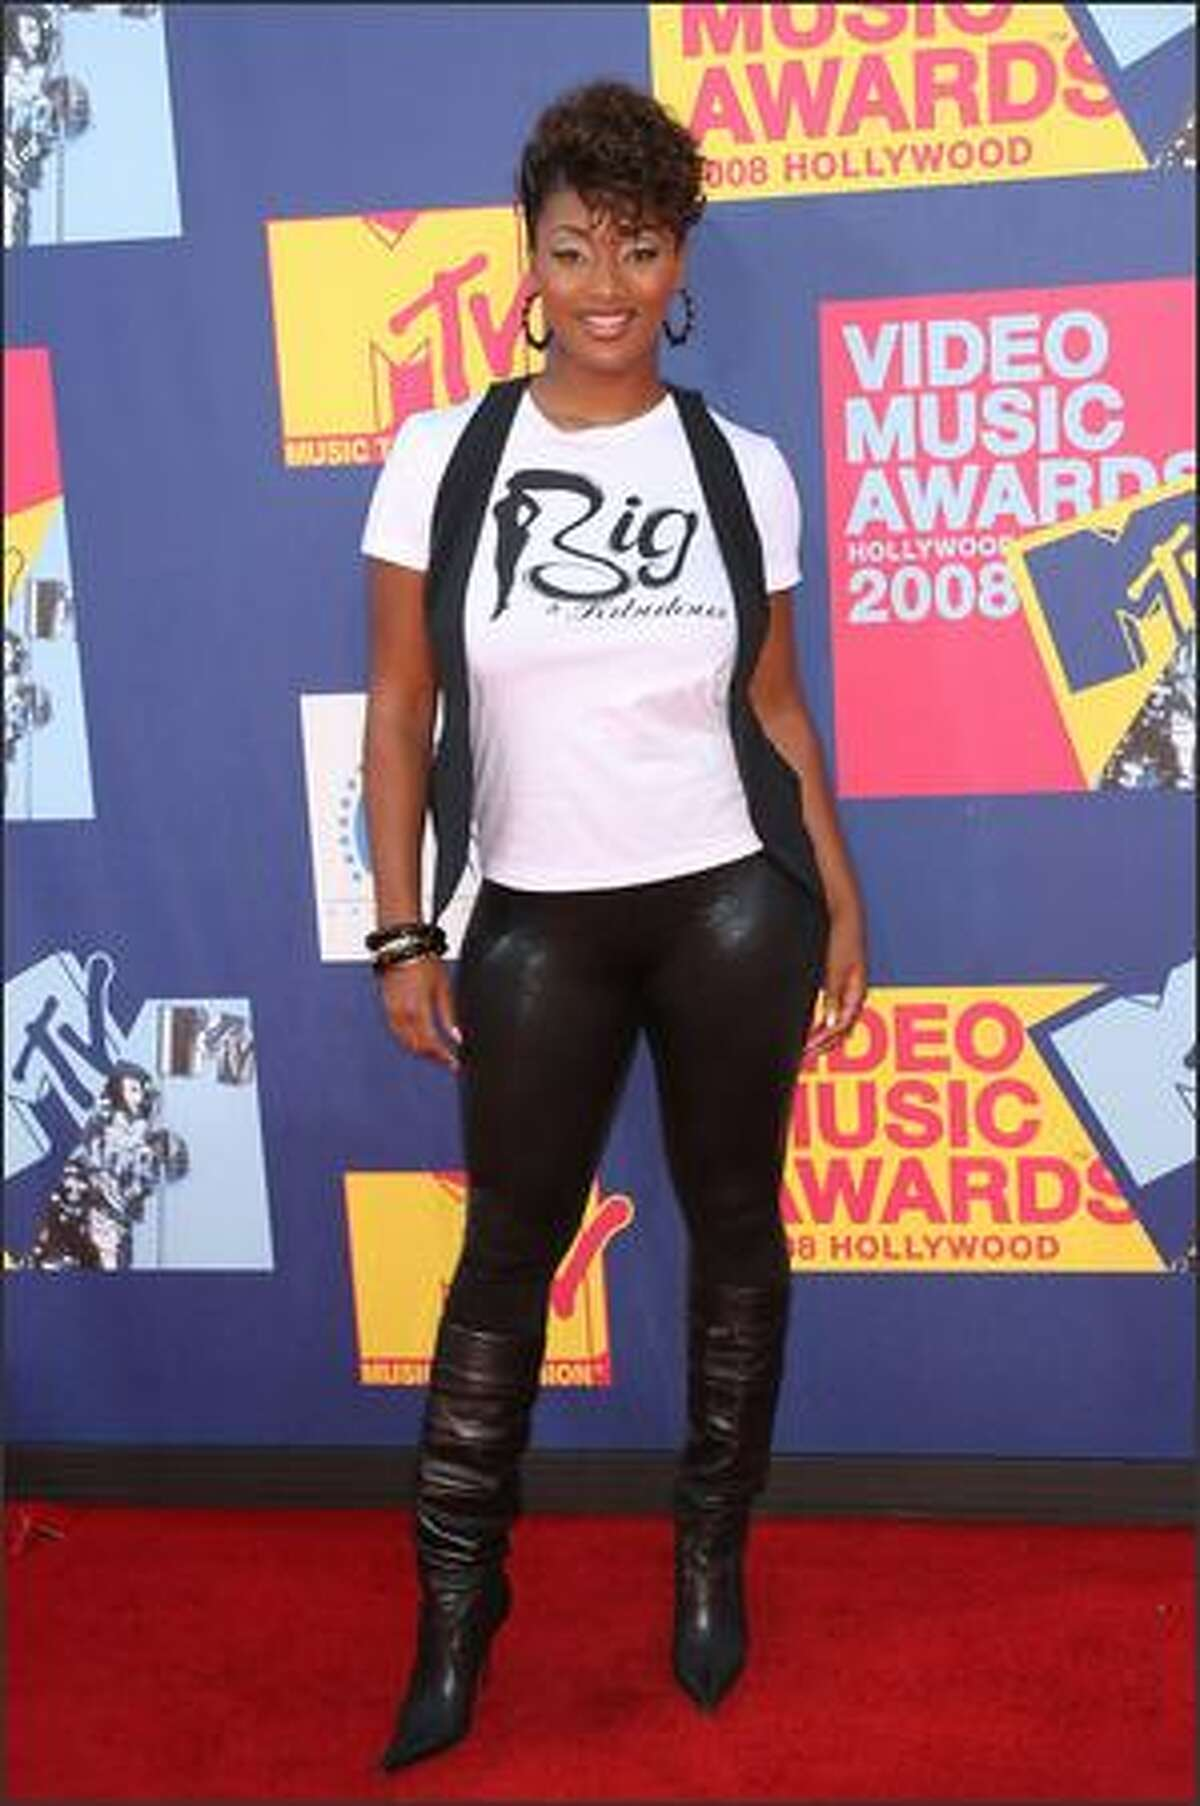 Model Toccara arrives at the 2008 MTV Video Music Awards at Paramount Pictures Studios on Sunday in Los Angeles, California.